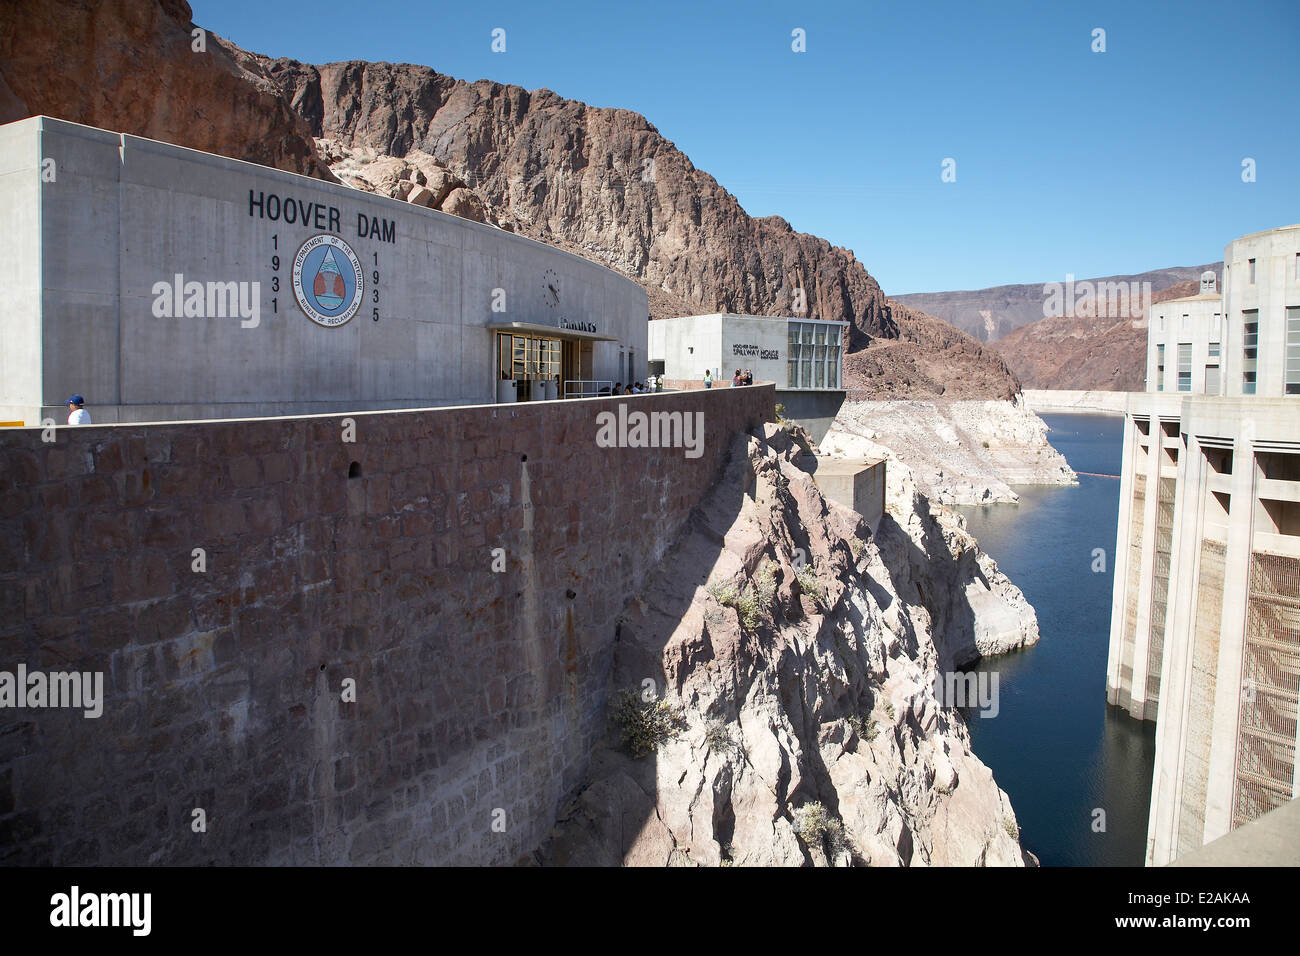 Hoover Dam water inlet tower, Colorado River border between the states of Nevada and Arizona, USA, April 2014. Stock Photo